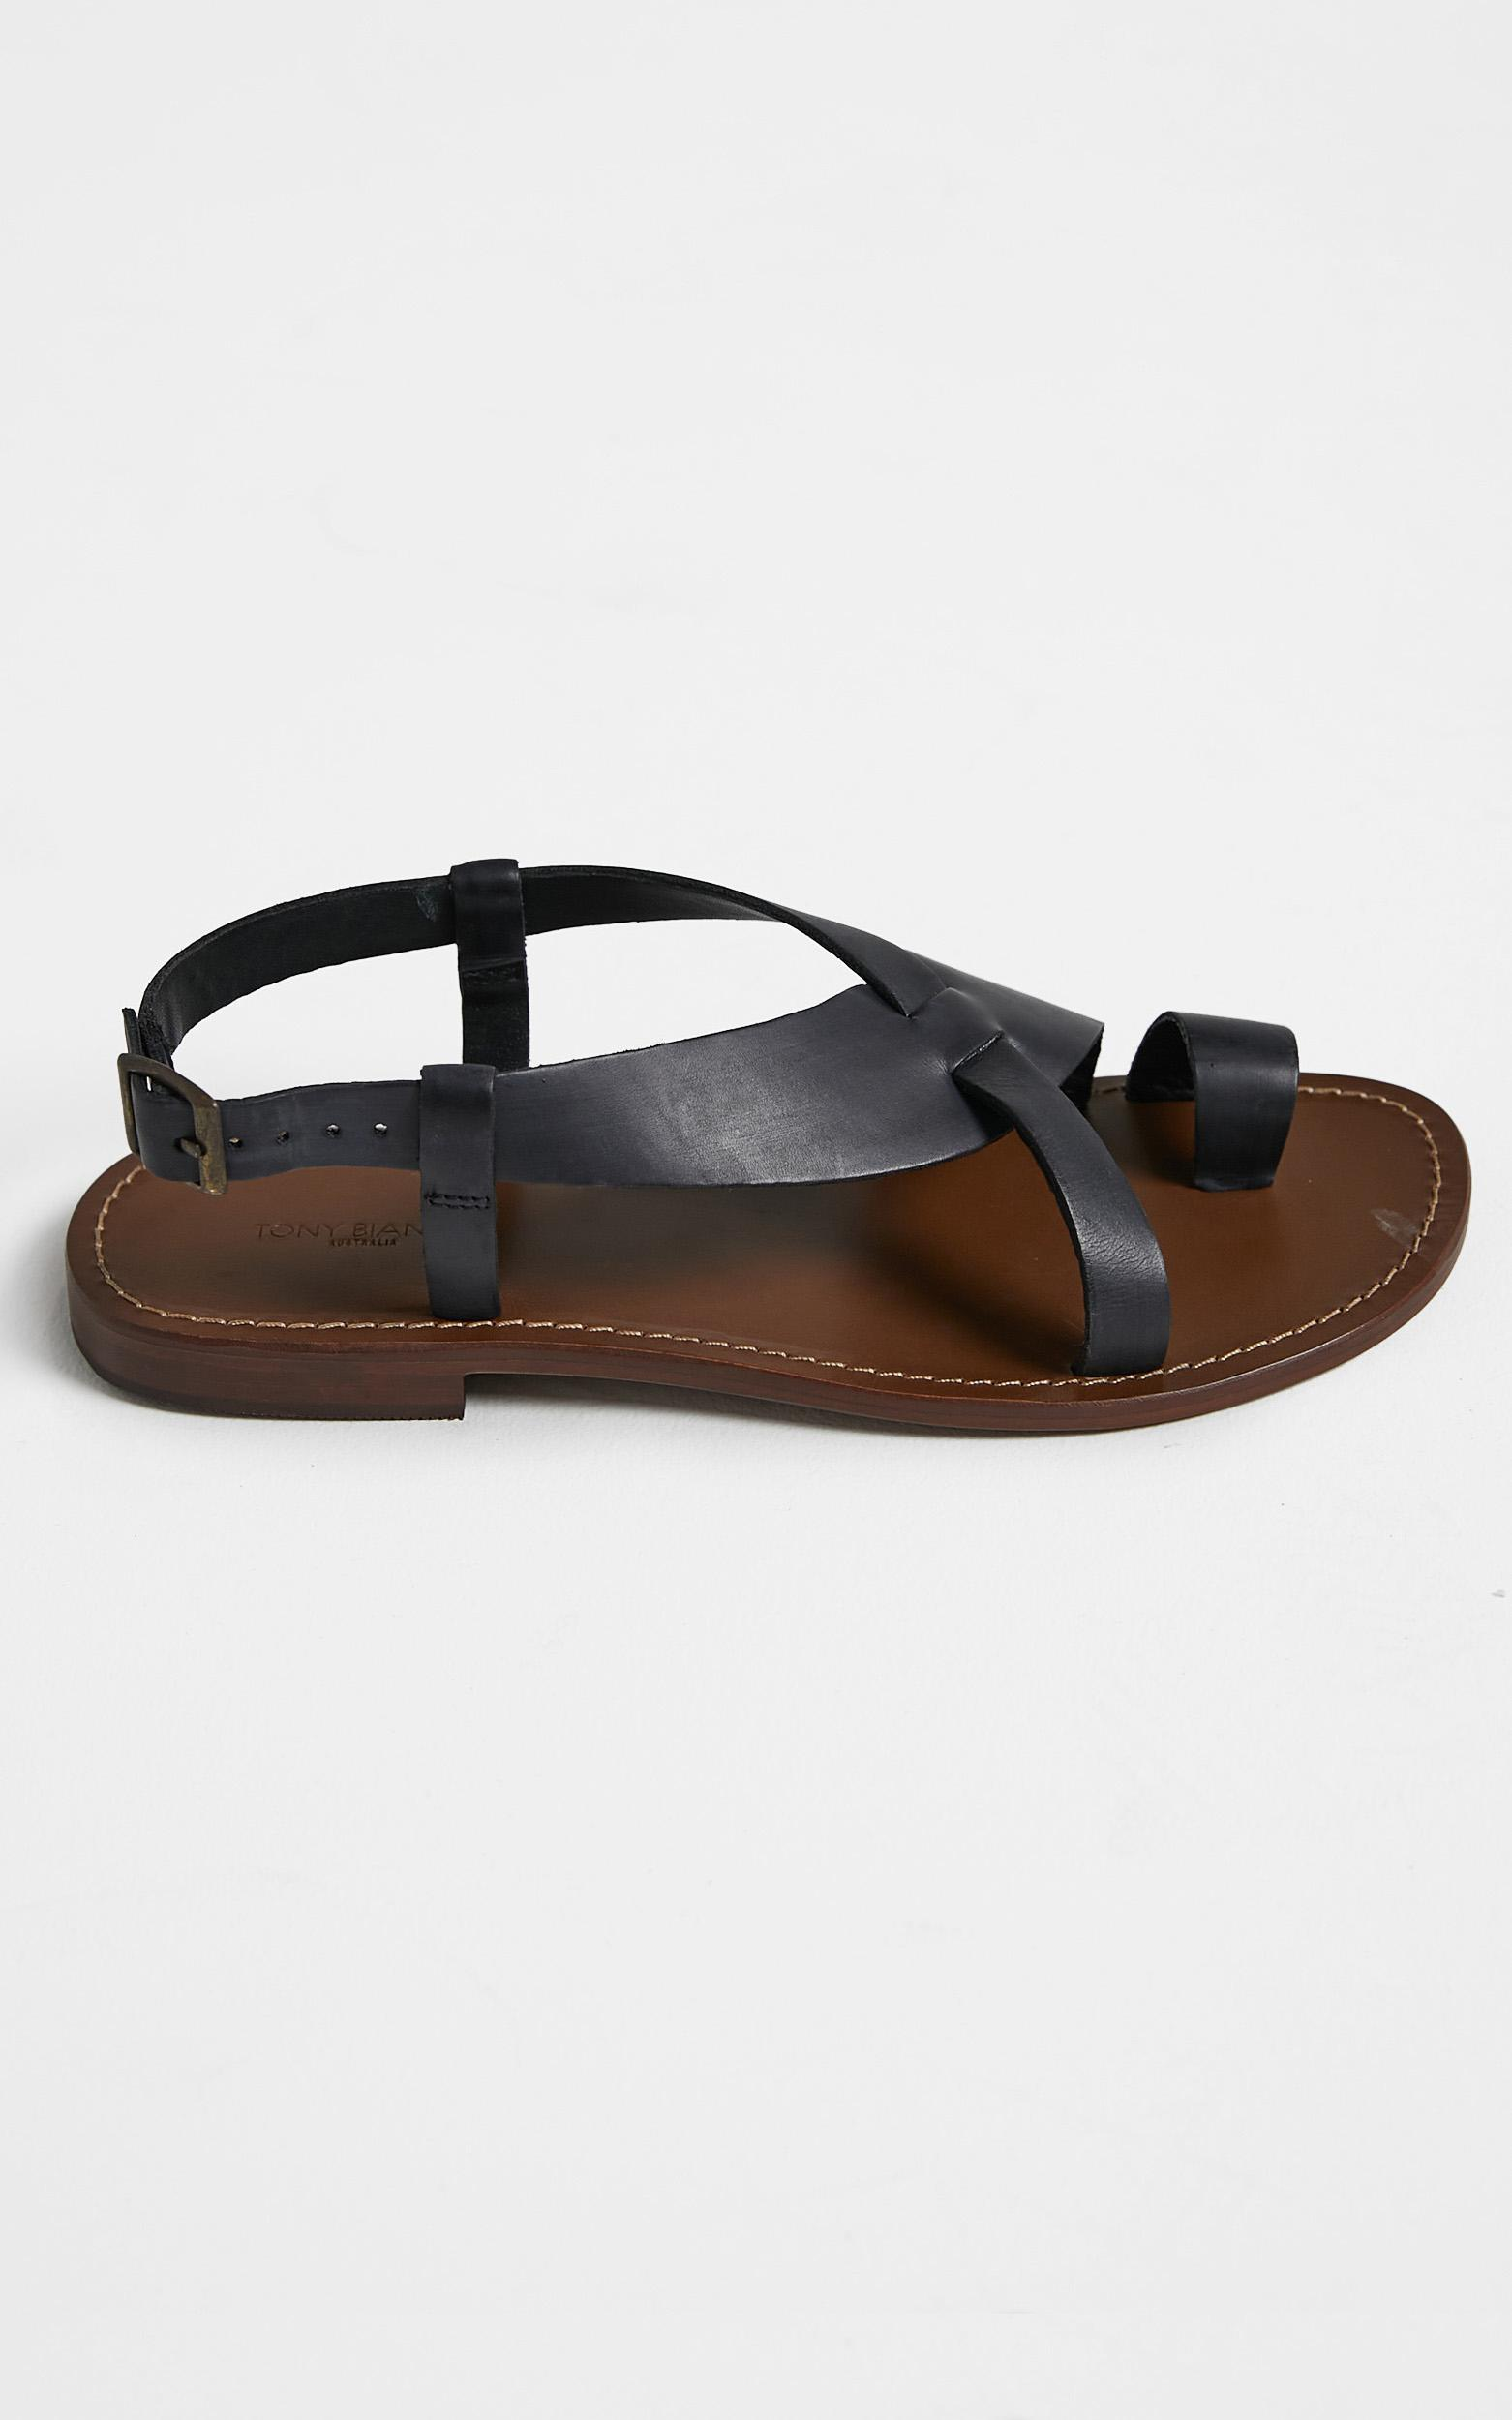 Tony Bianco - Aila Sandals in Black - 5, Black, hi-res image number null